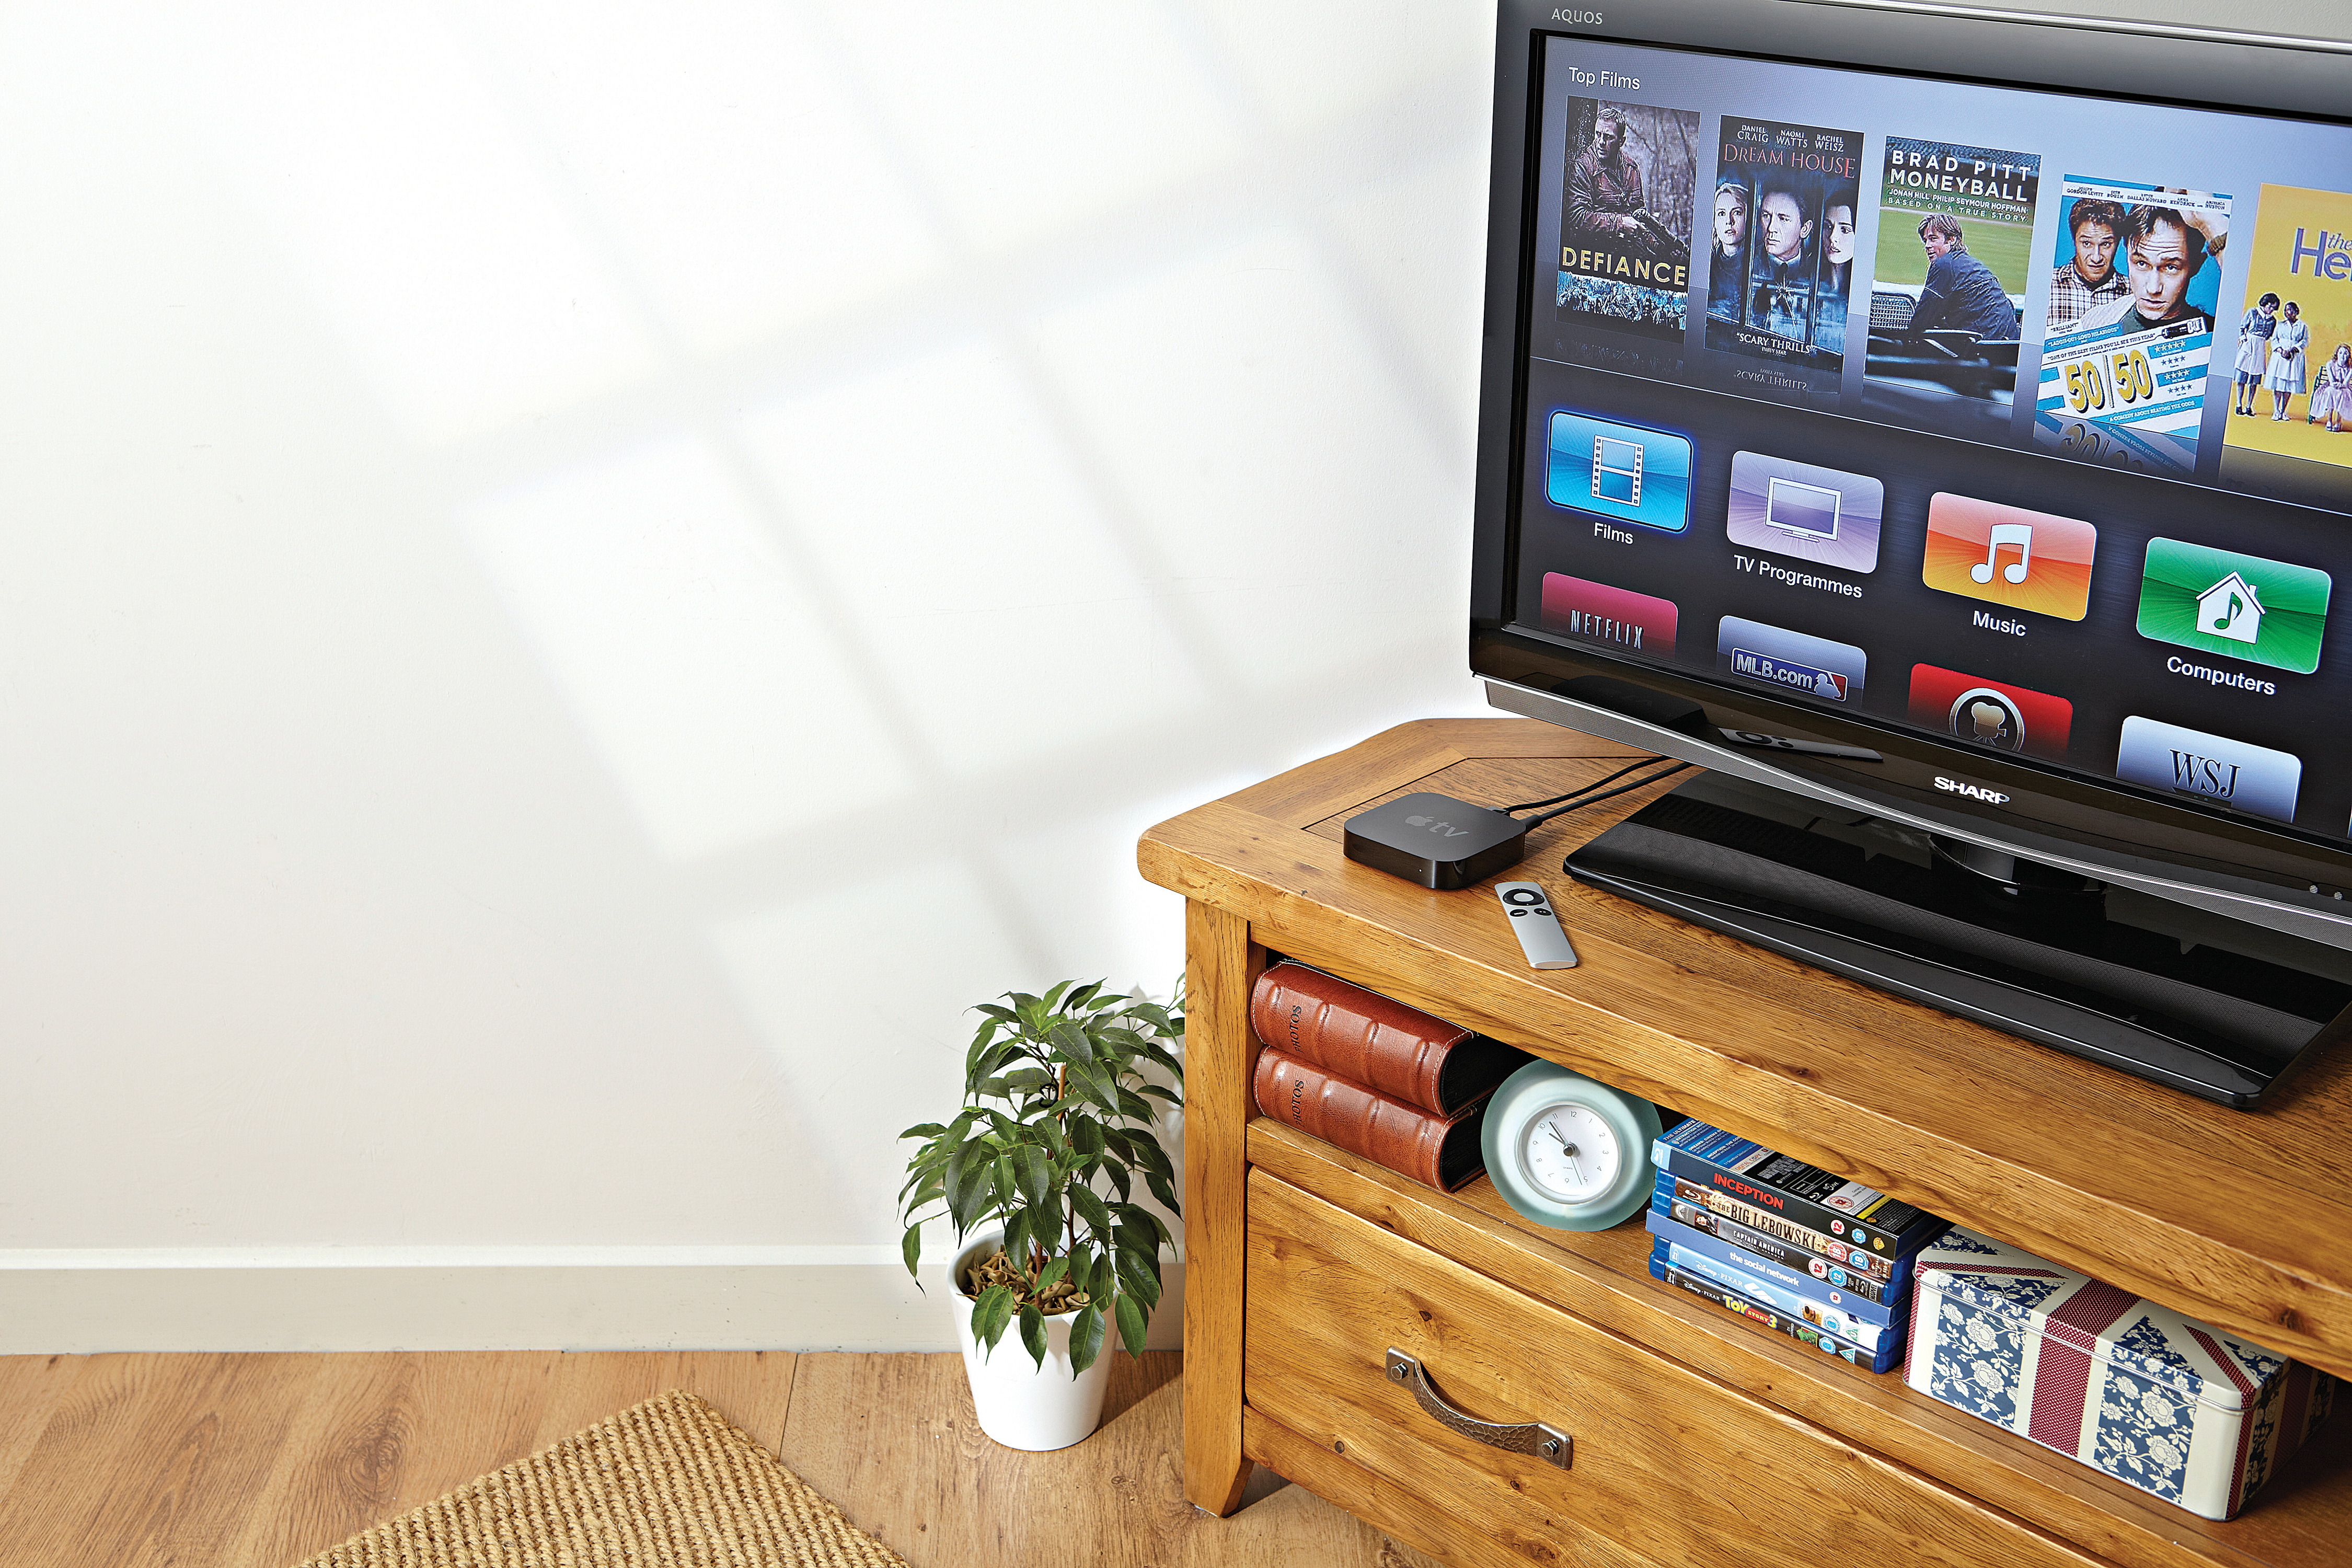 Satellite Tv Internet >> For The First Time More Americans Pay For Internet Video